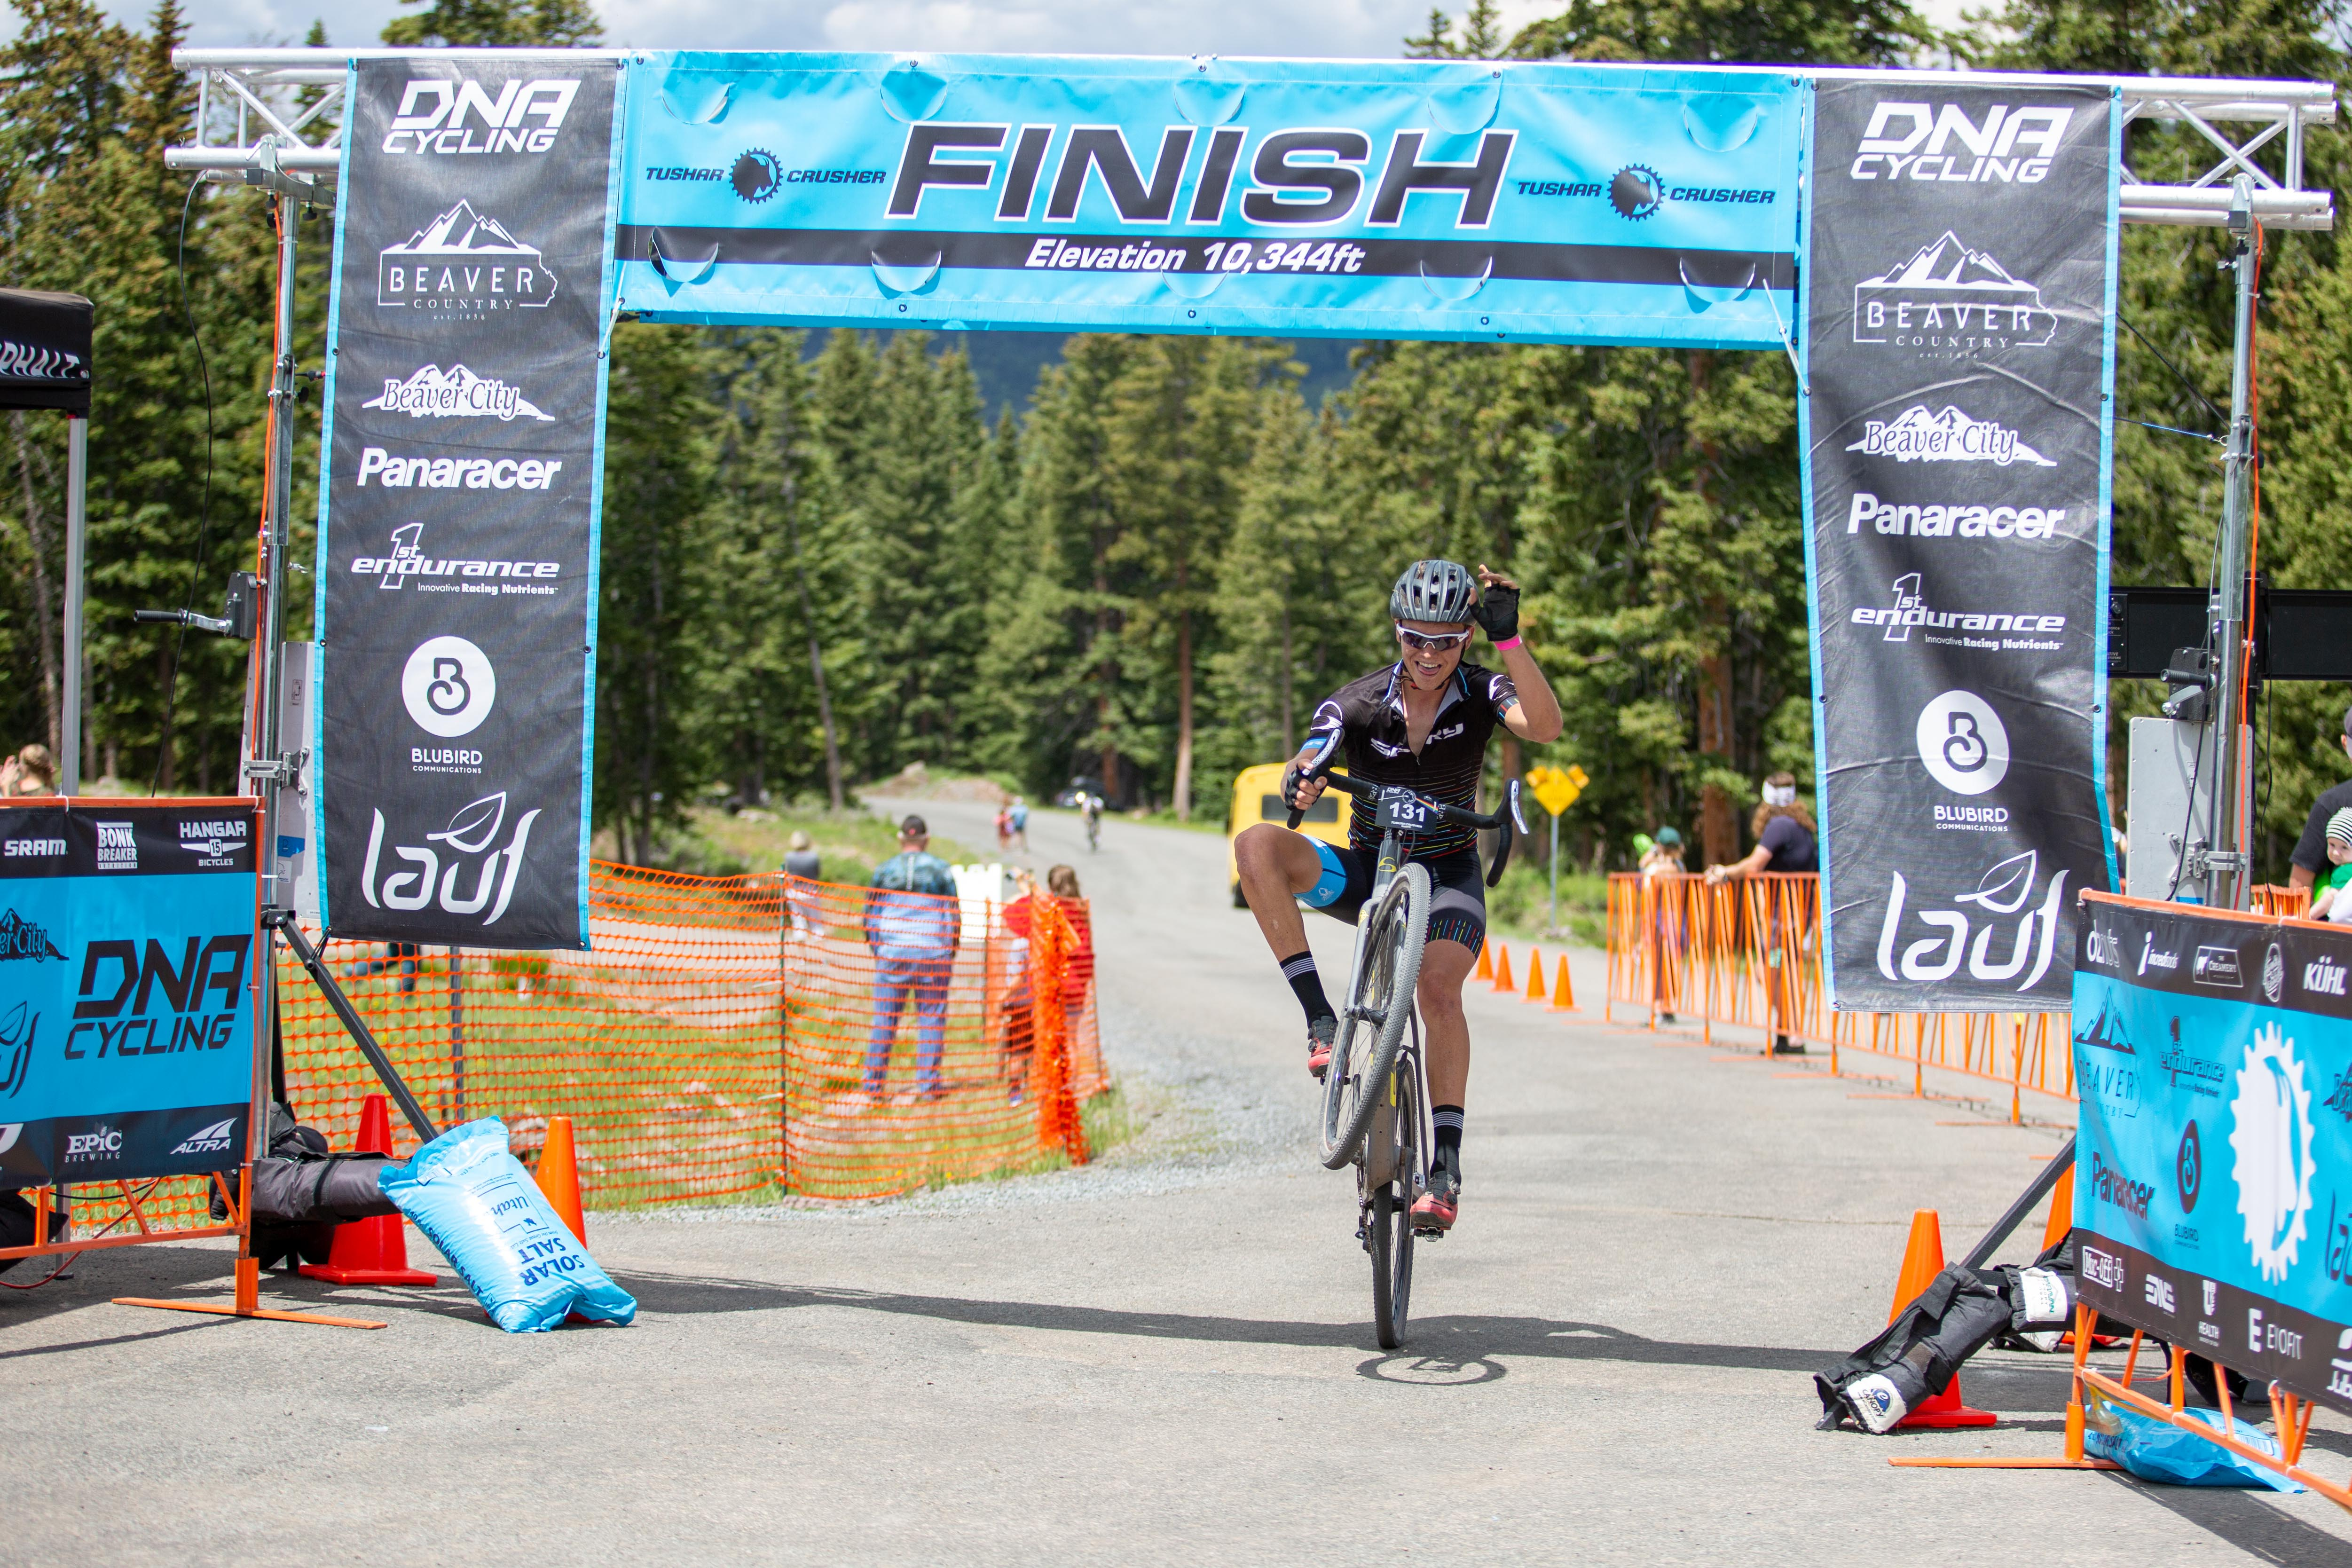 18-year old Andrew Conover pops a wheelie coming across the line to win the 29 and Under age group. Photo: Angie Harker.